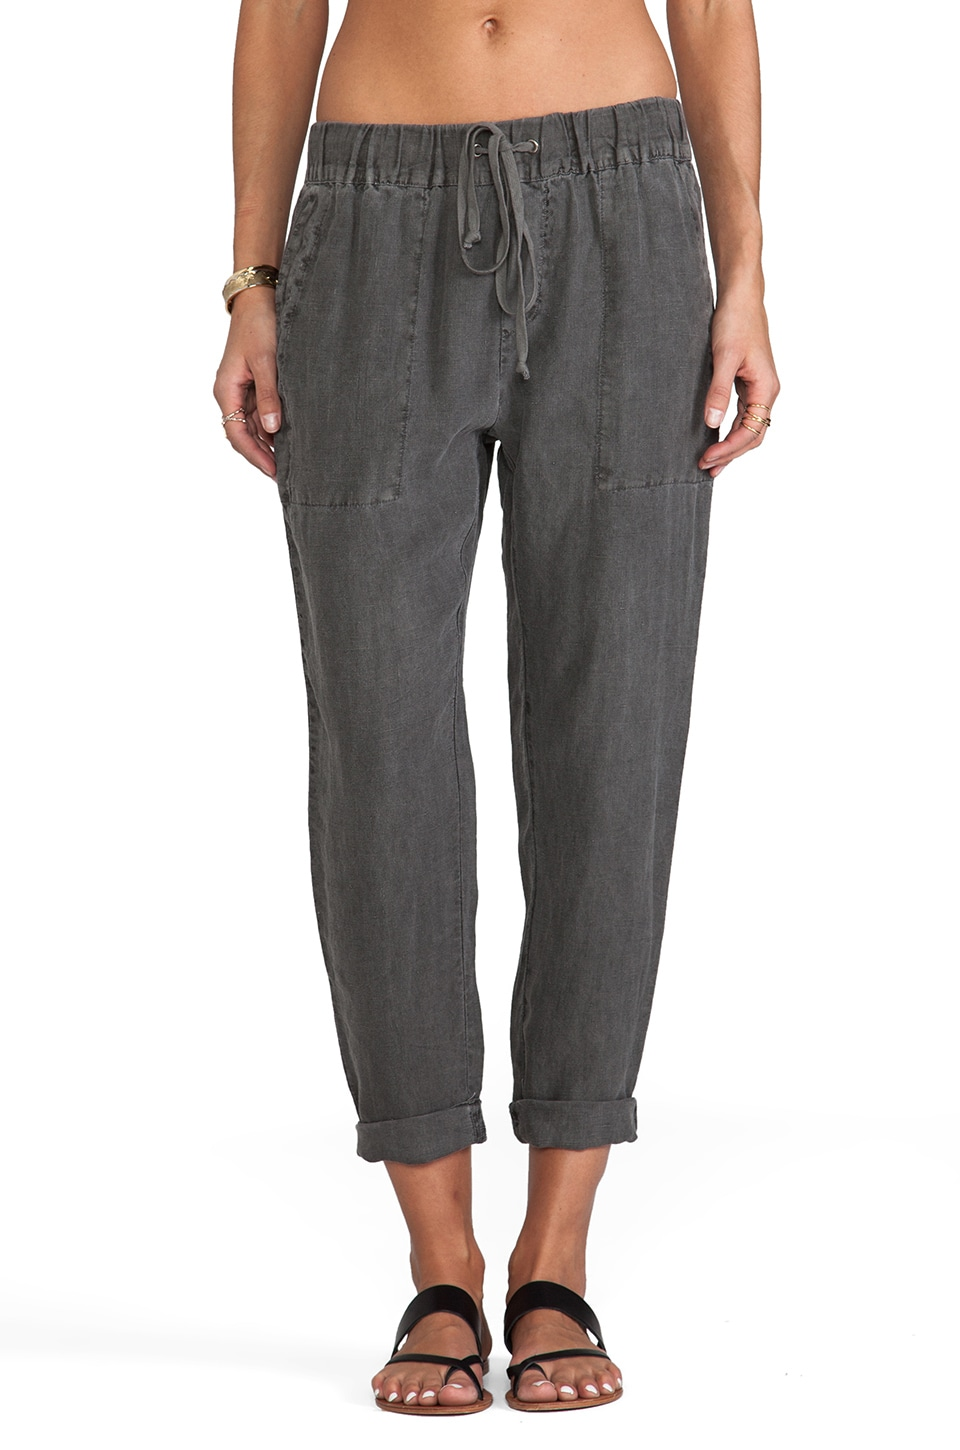 Enza Costa Linen Pant in Carbon